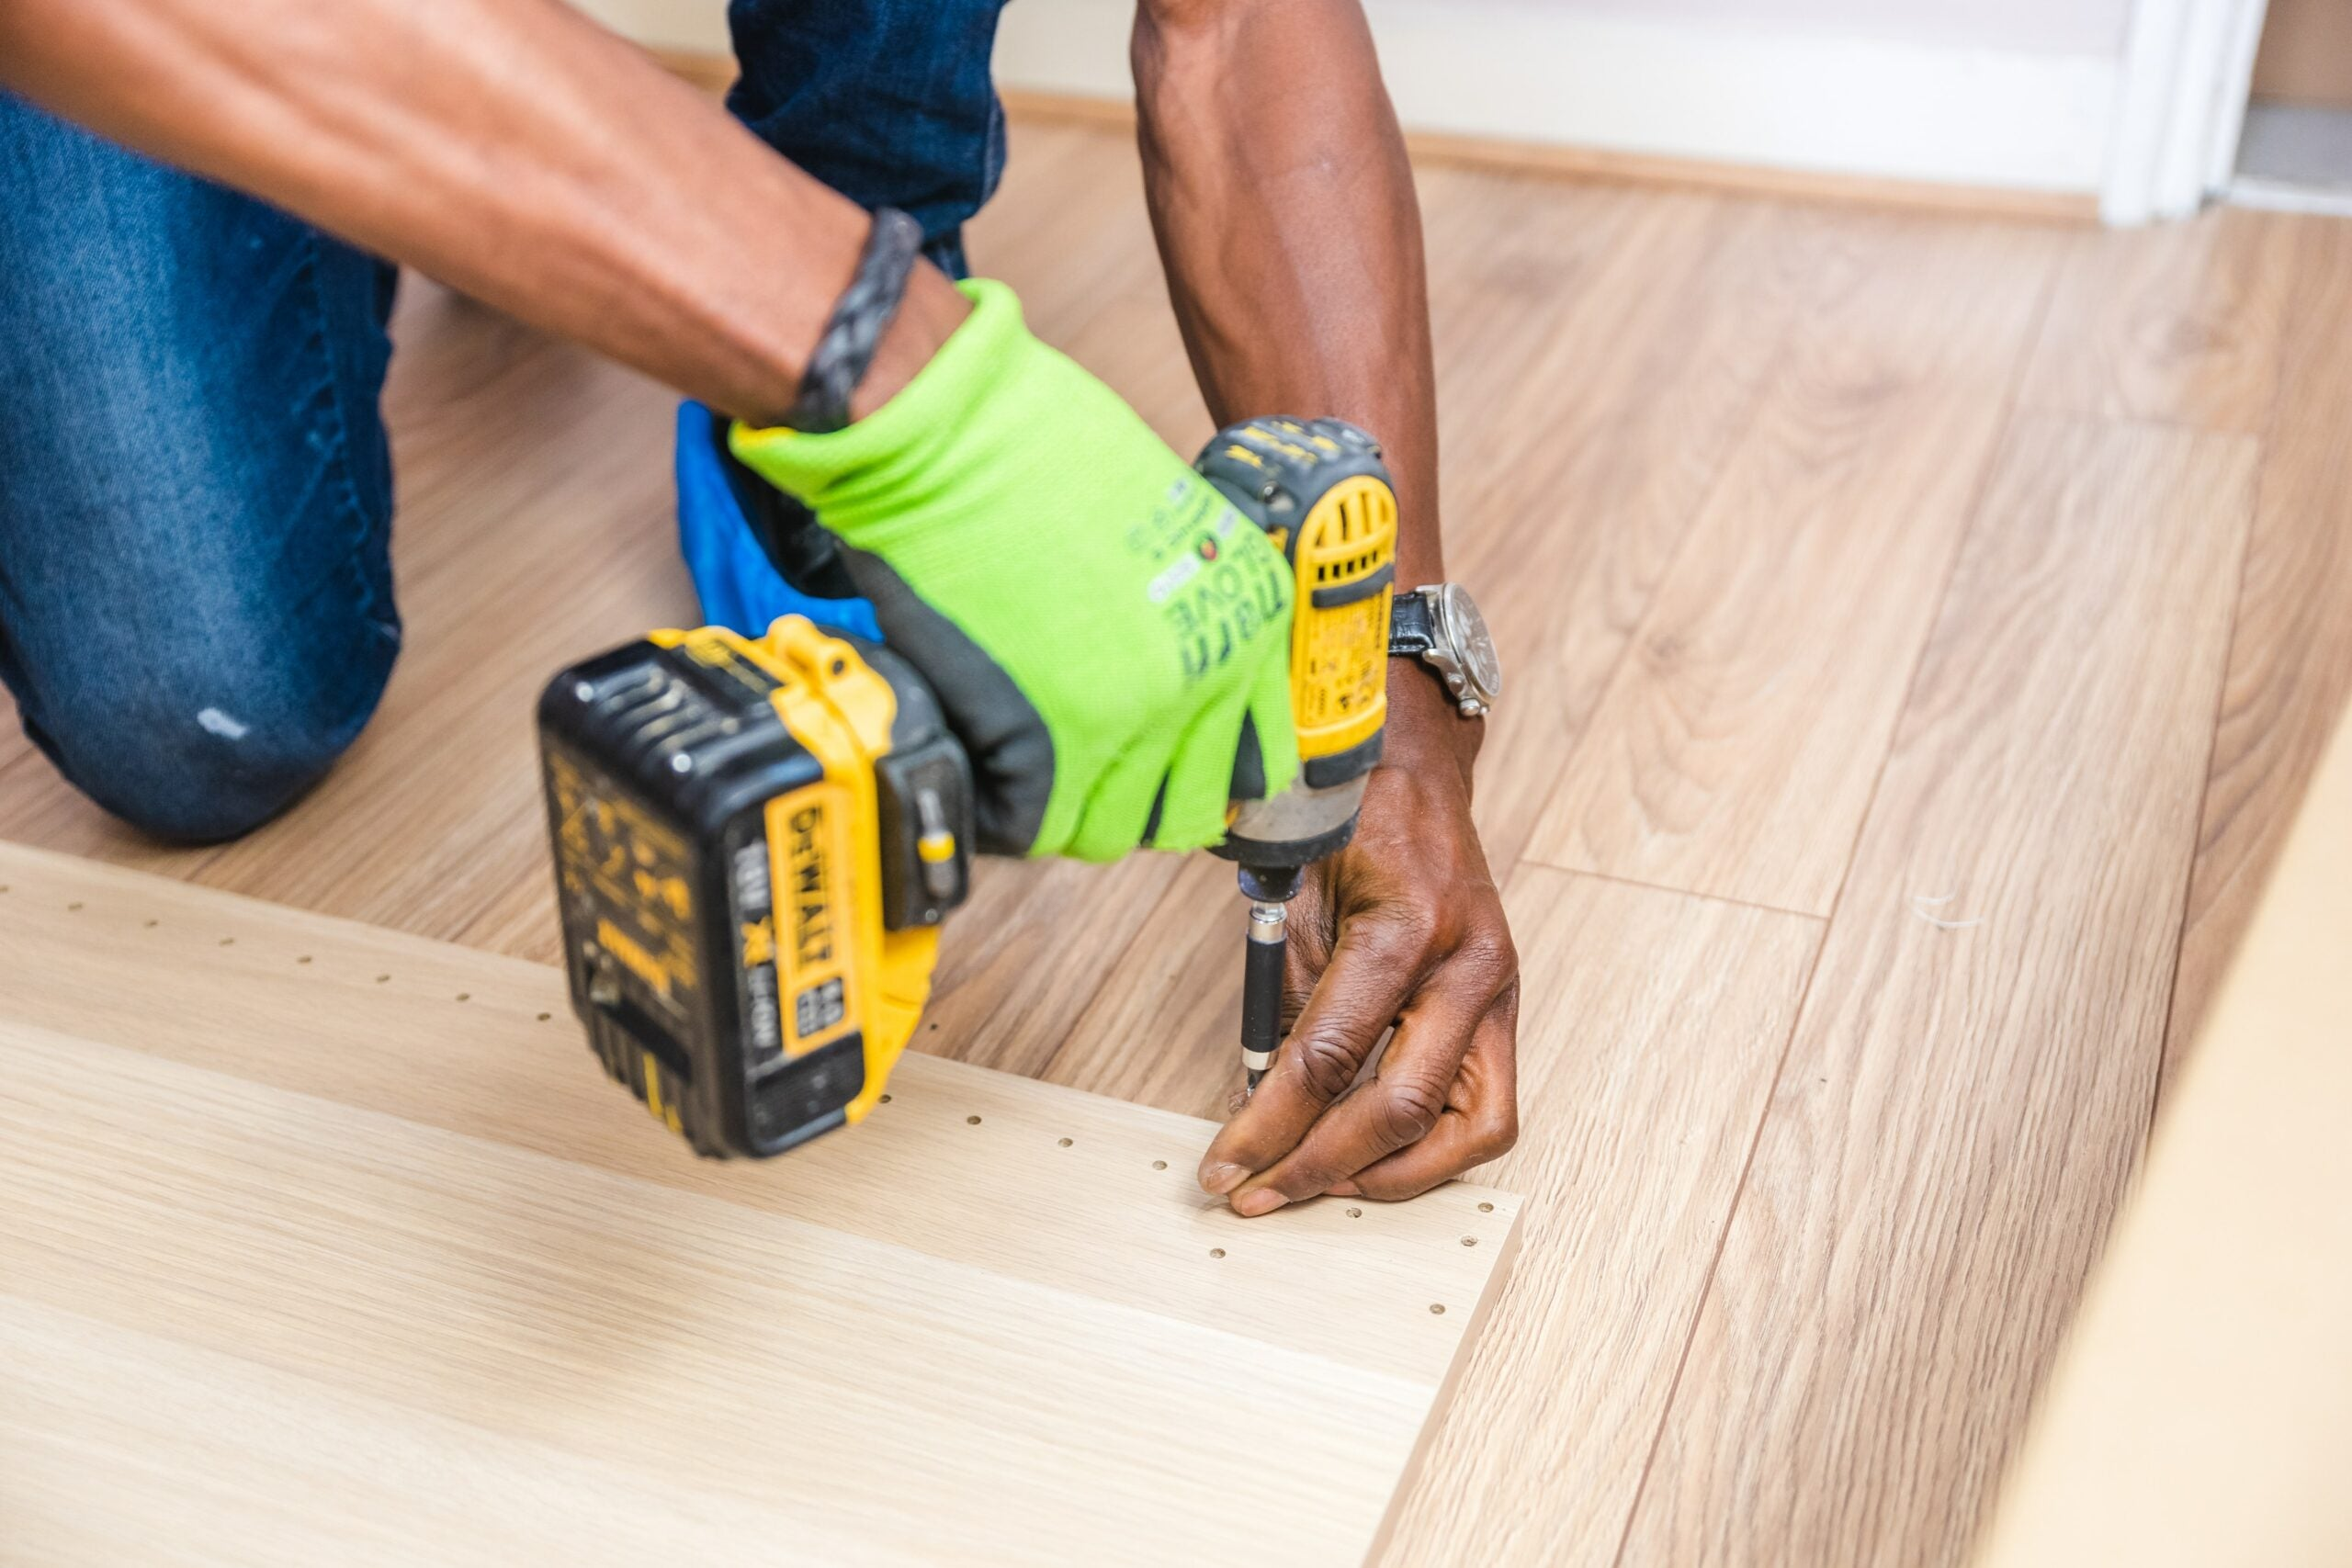 man using a drill to put a screw into a board of wood